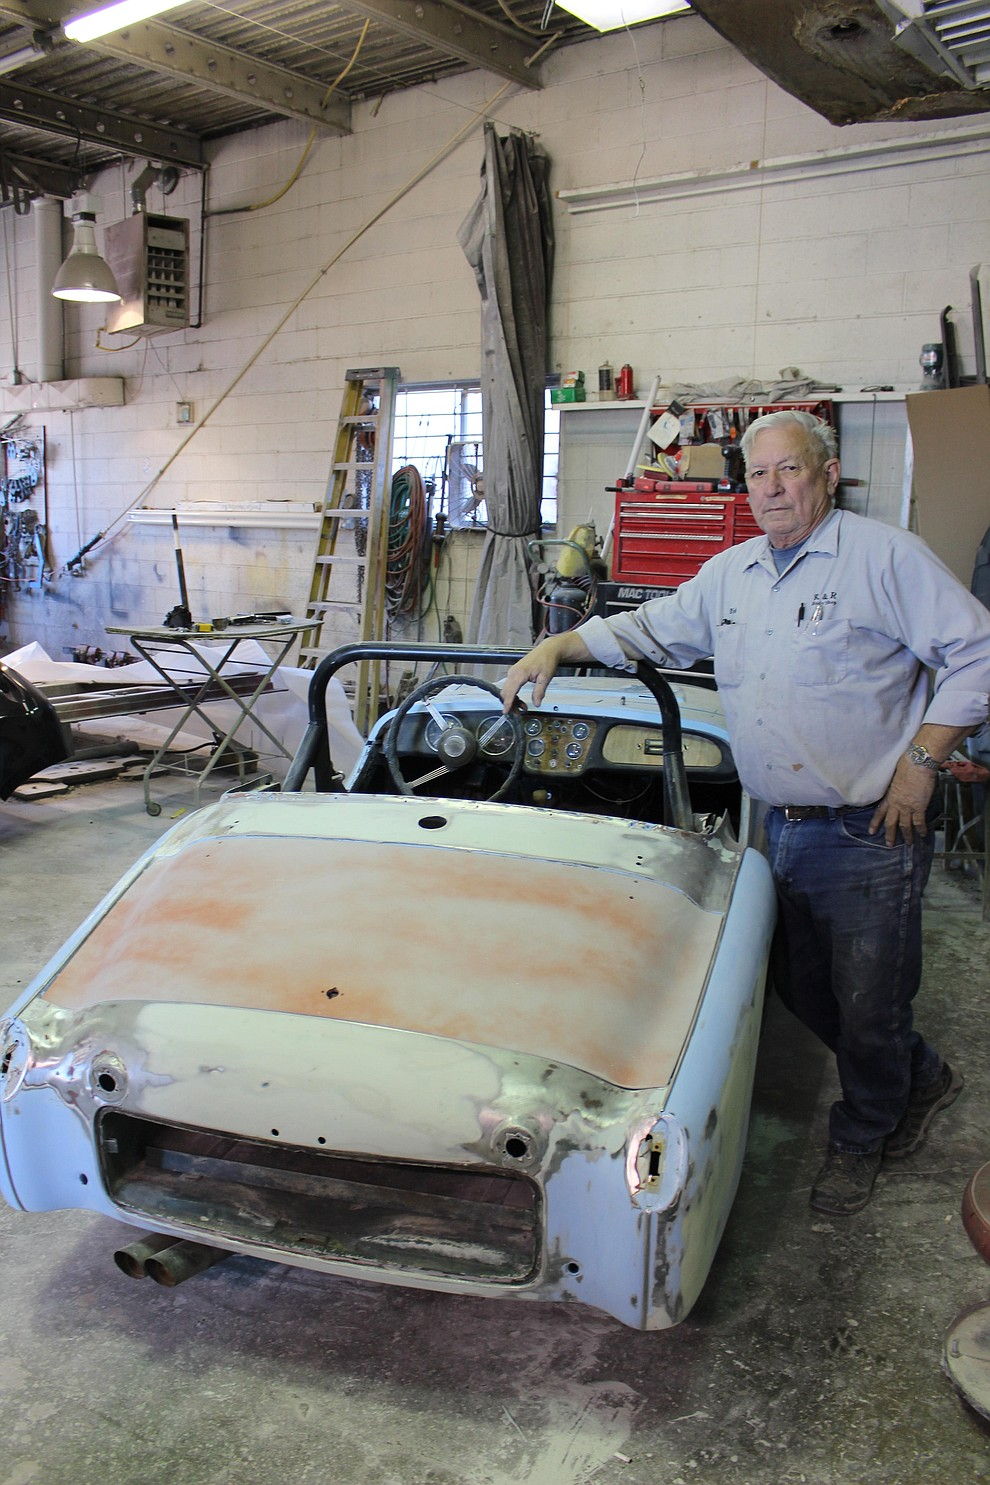 Rick Rice, owner of R&R Body Shop on Andy Devine Avenue, said restoring classic cars like this 1952 Triumph can cost more than people think.